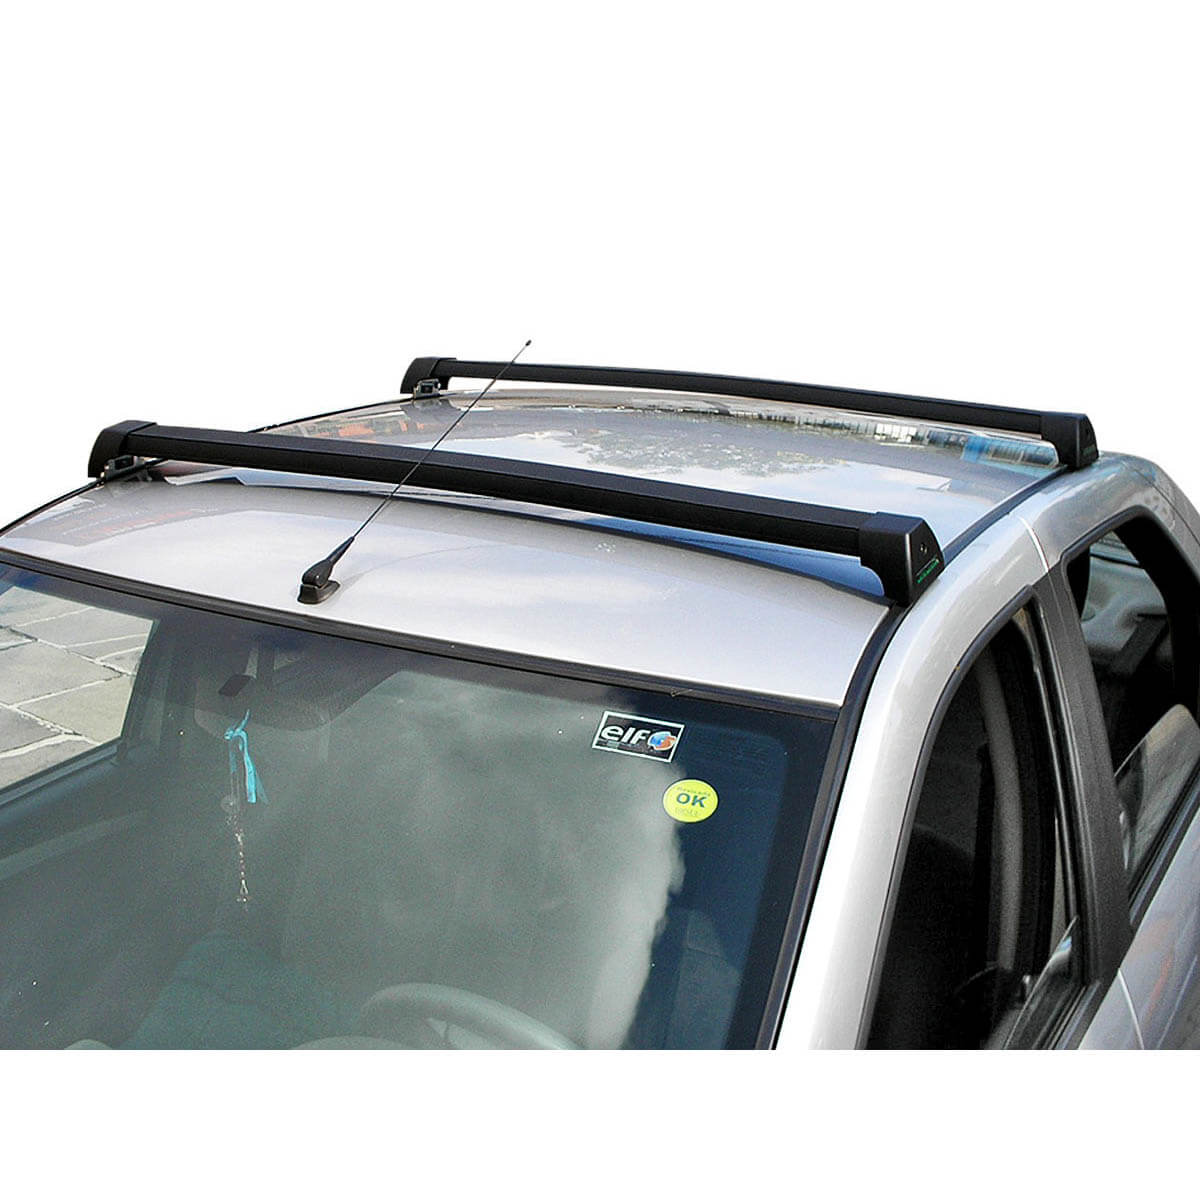 Rack de teto Long Life Sports preto C4 hatch 2009 a 2014